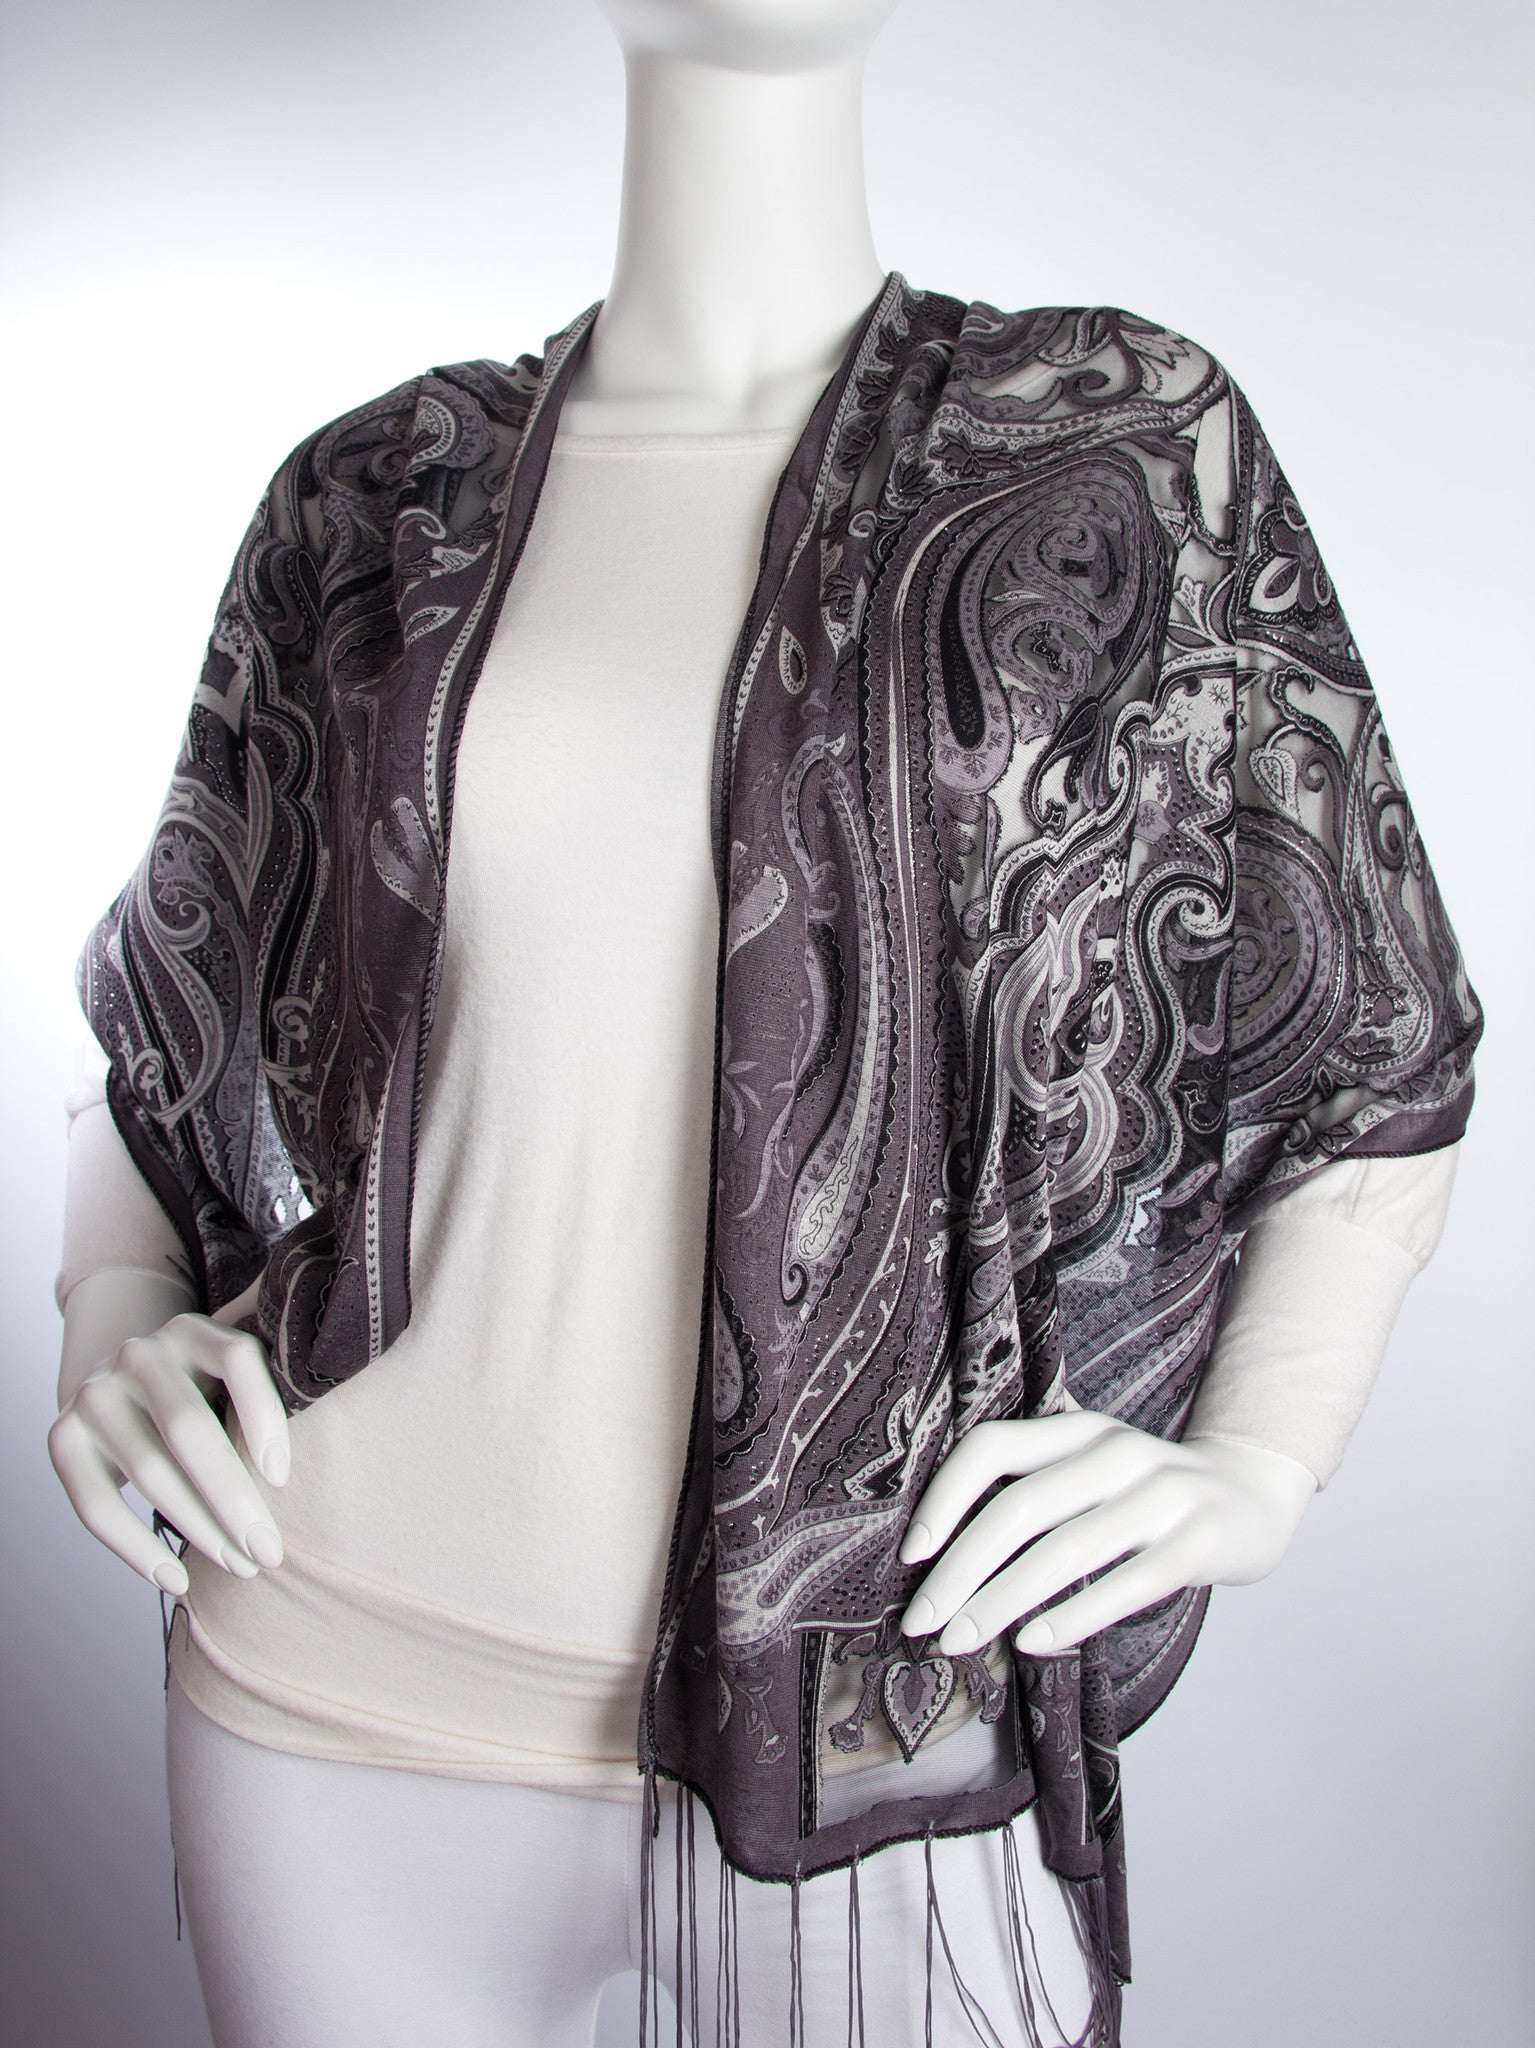 Scarves - Clara Scarf, Delicate Sheer Burnout Paisley Pattern Scarf with Fringe -() Bohomonde  - 7